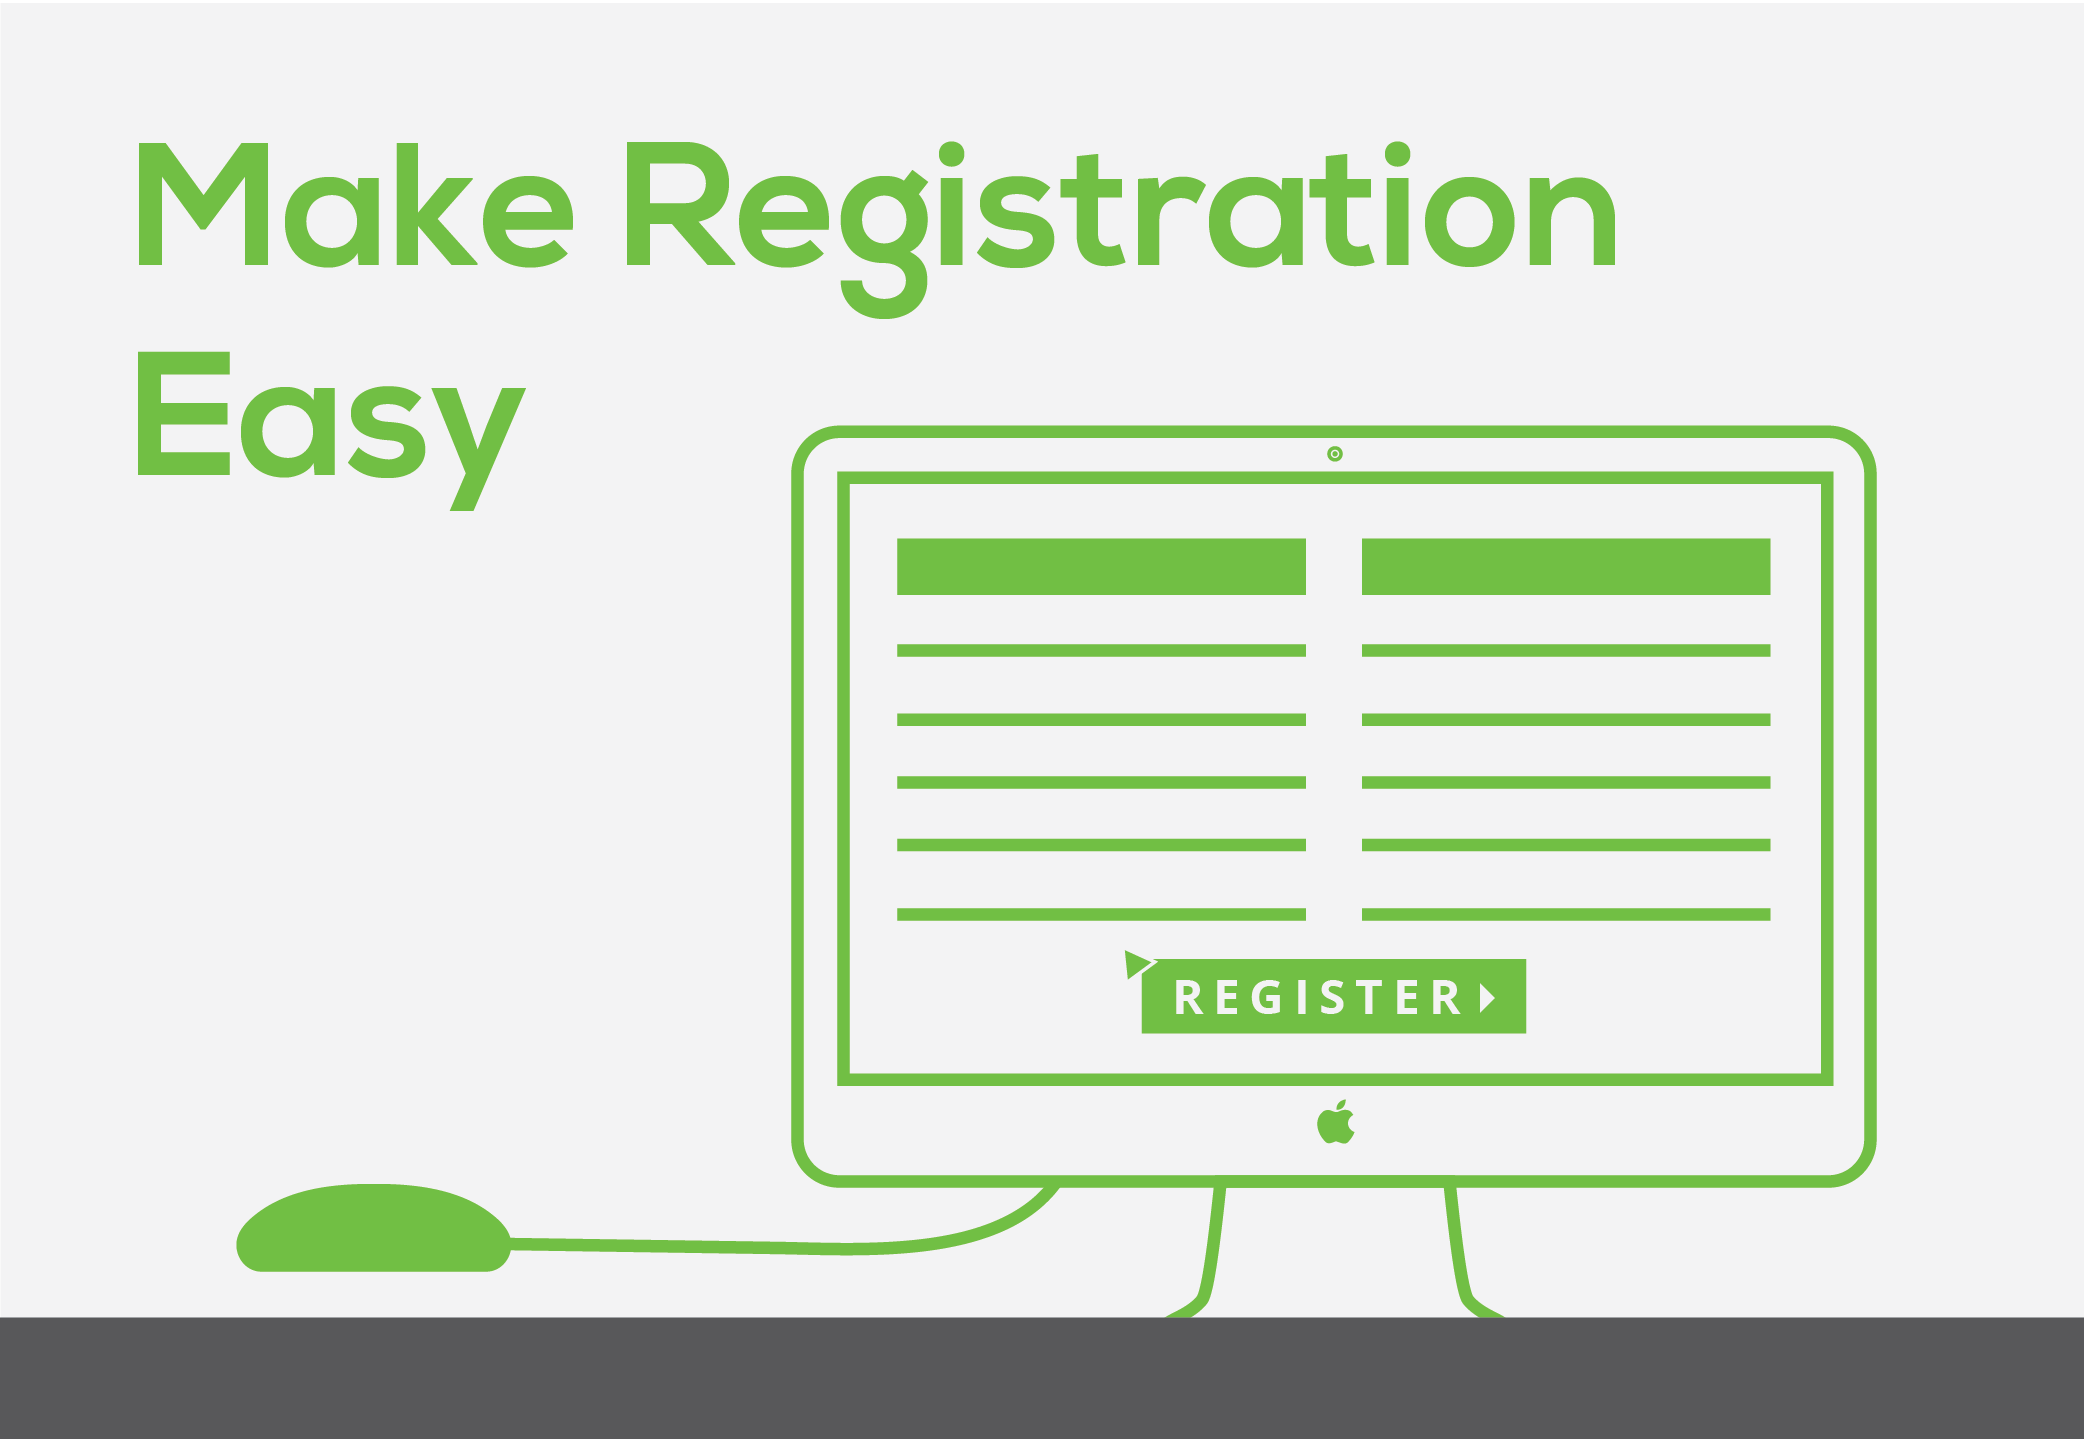 Make registration easy